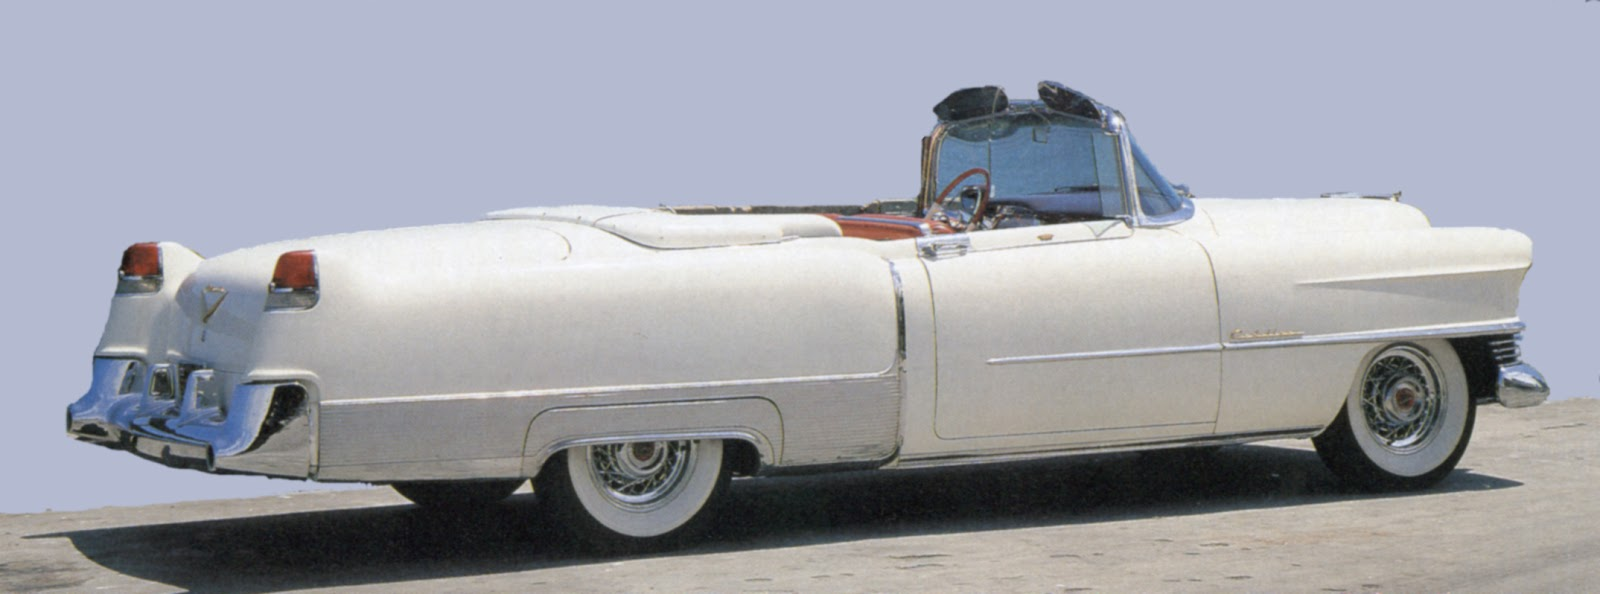 Lost Star Cars Marilyn Monroes Where Are They Now Updated 1954 Ford Thunderbird Convertible Cadillac Eldorado Was Marilyns 1st New Car